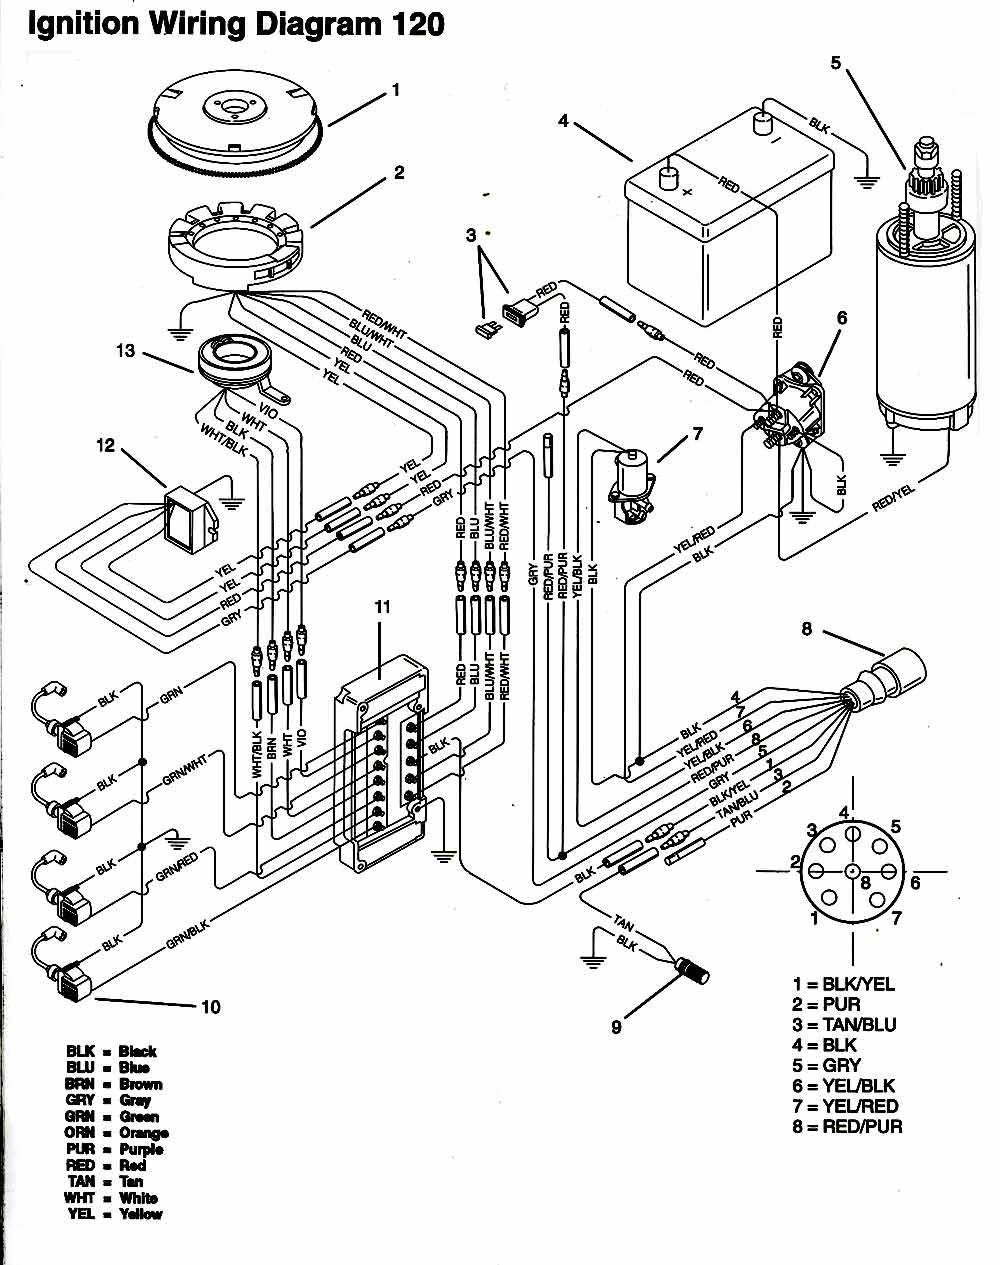 [MR_0204] 1972 Mercury Engine Diagram Schematic Wiring